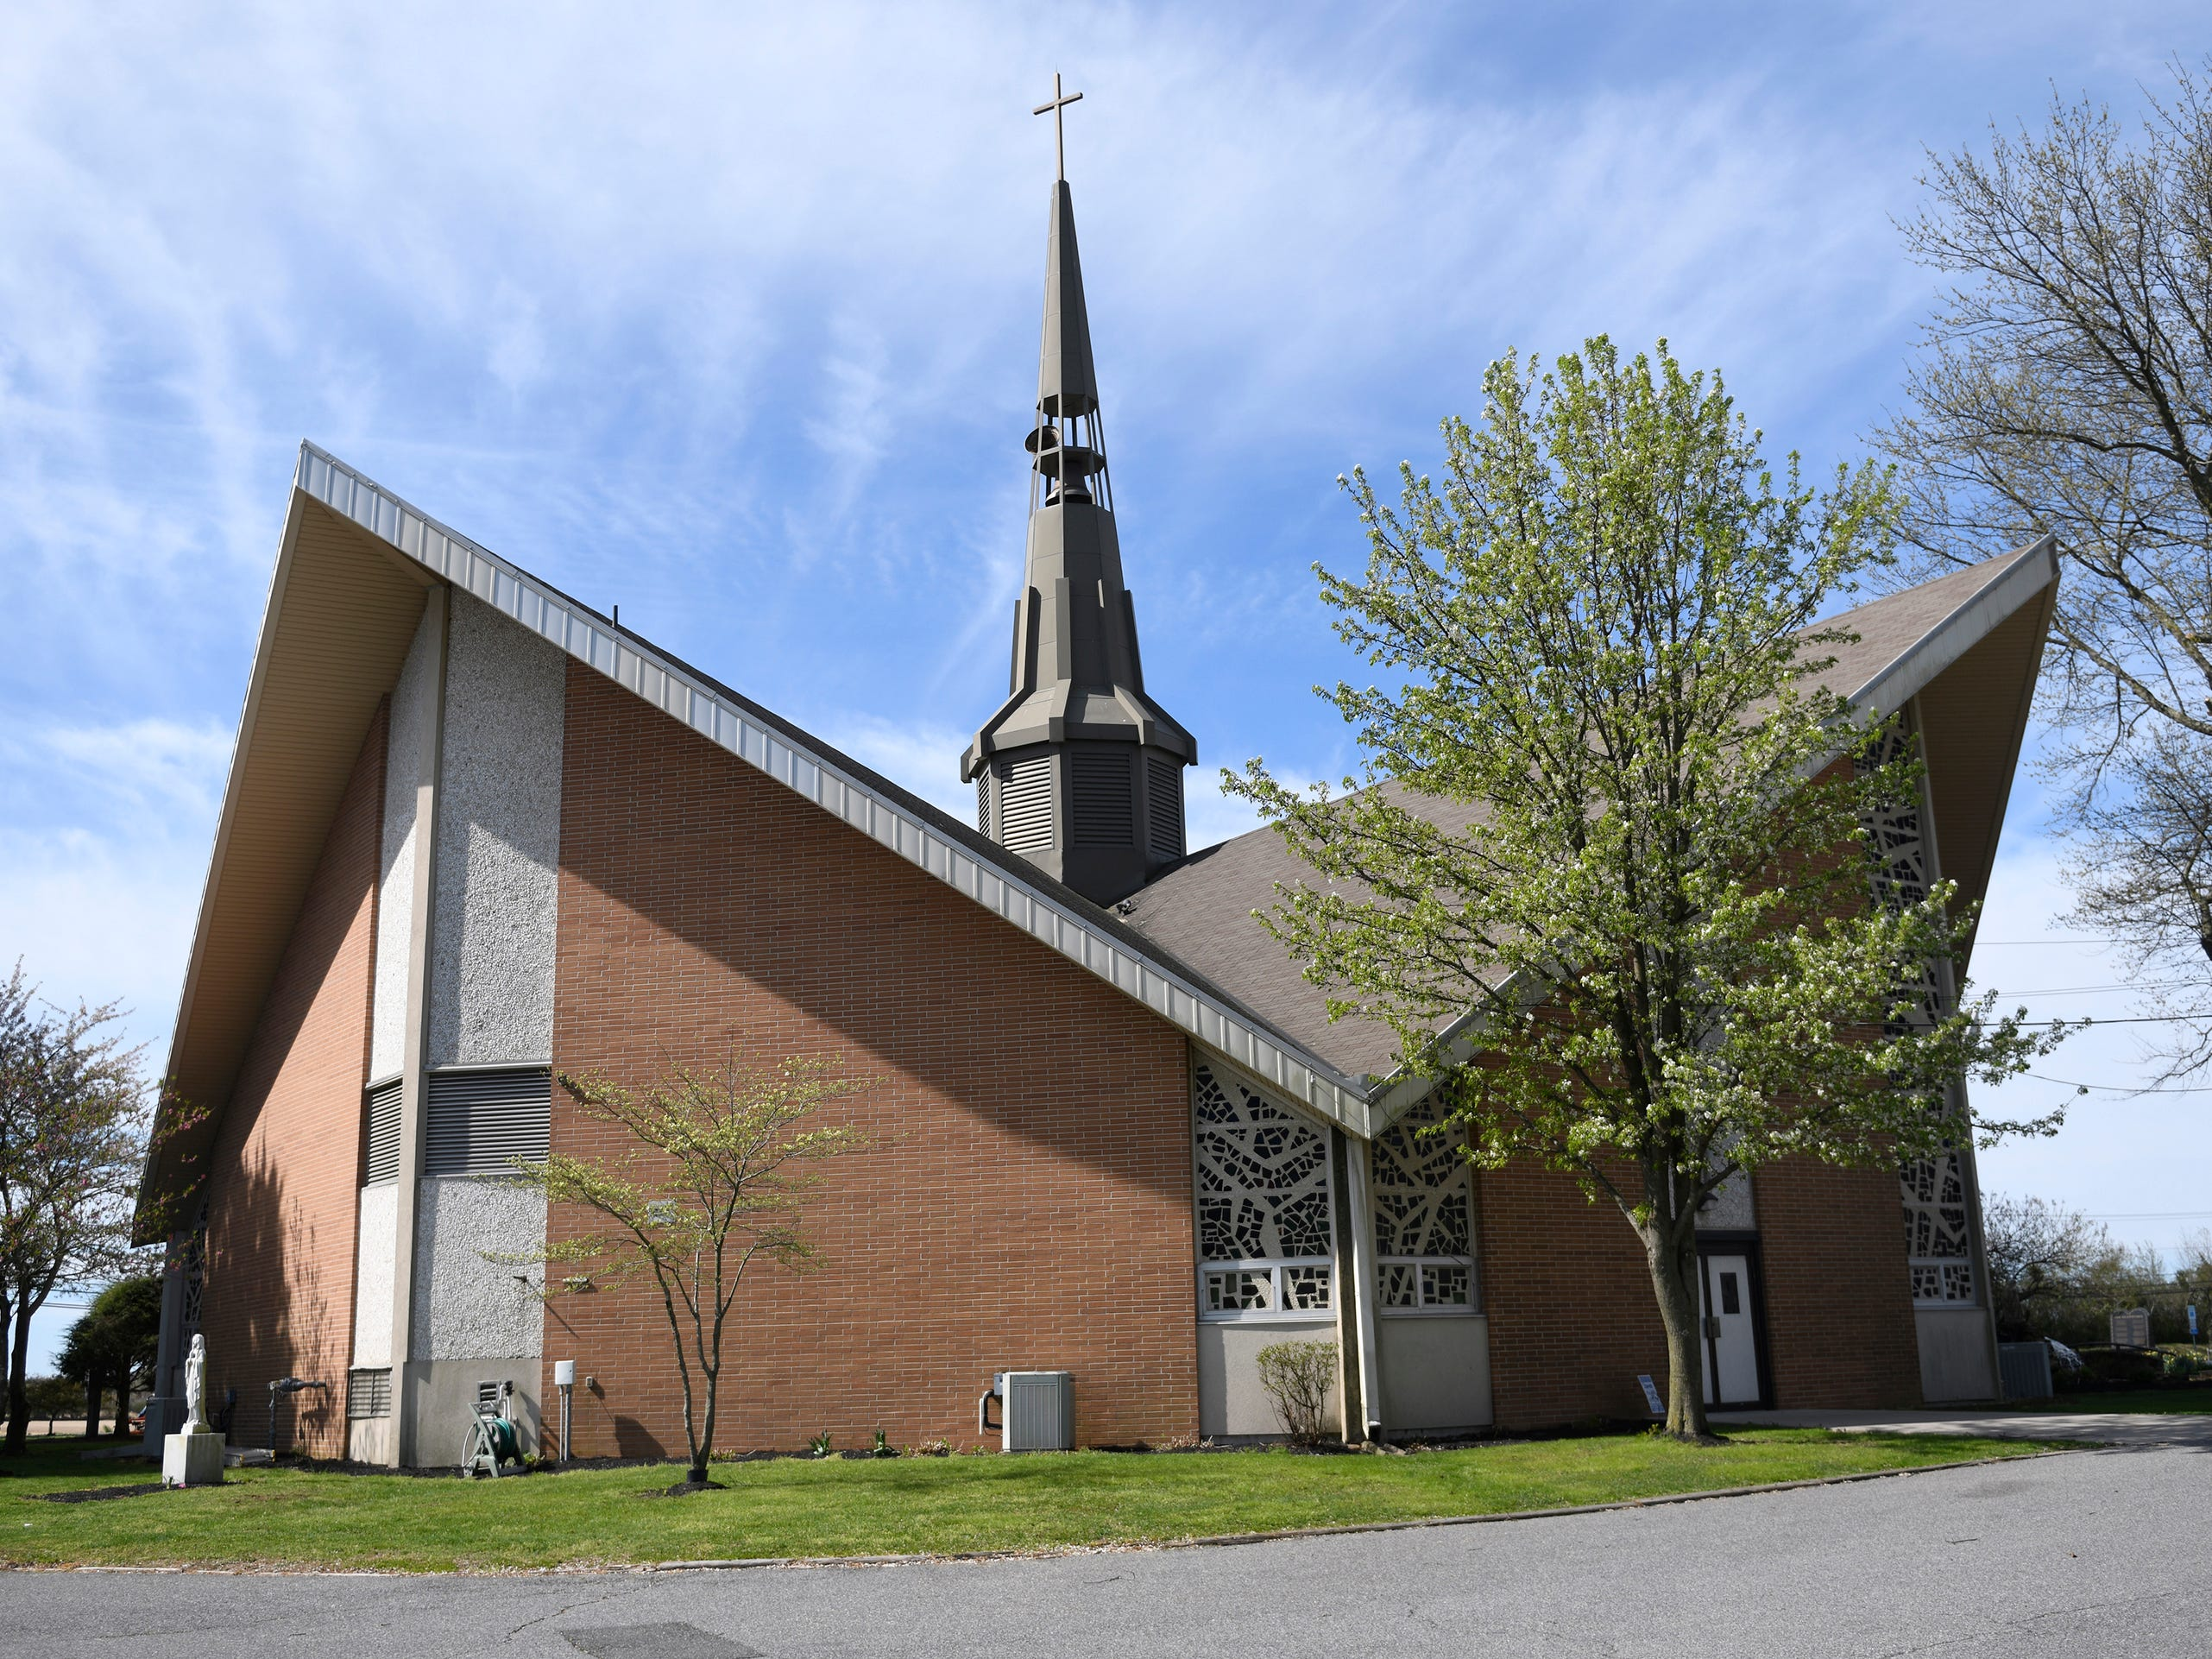 Our Lady of Pompeii Roman Catholic Church in Vineland, pictured here on Tuesday, April 16, 2019.